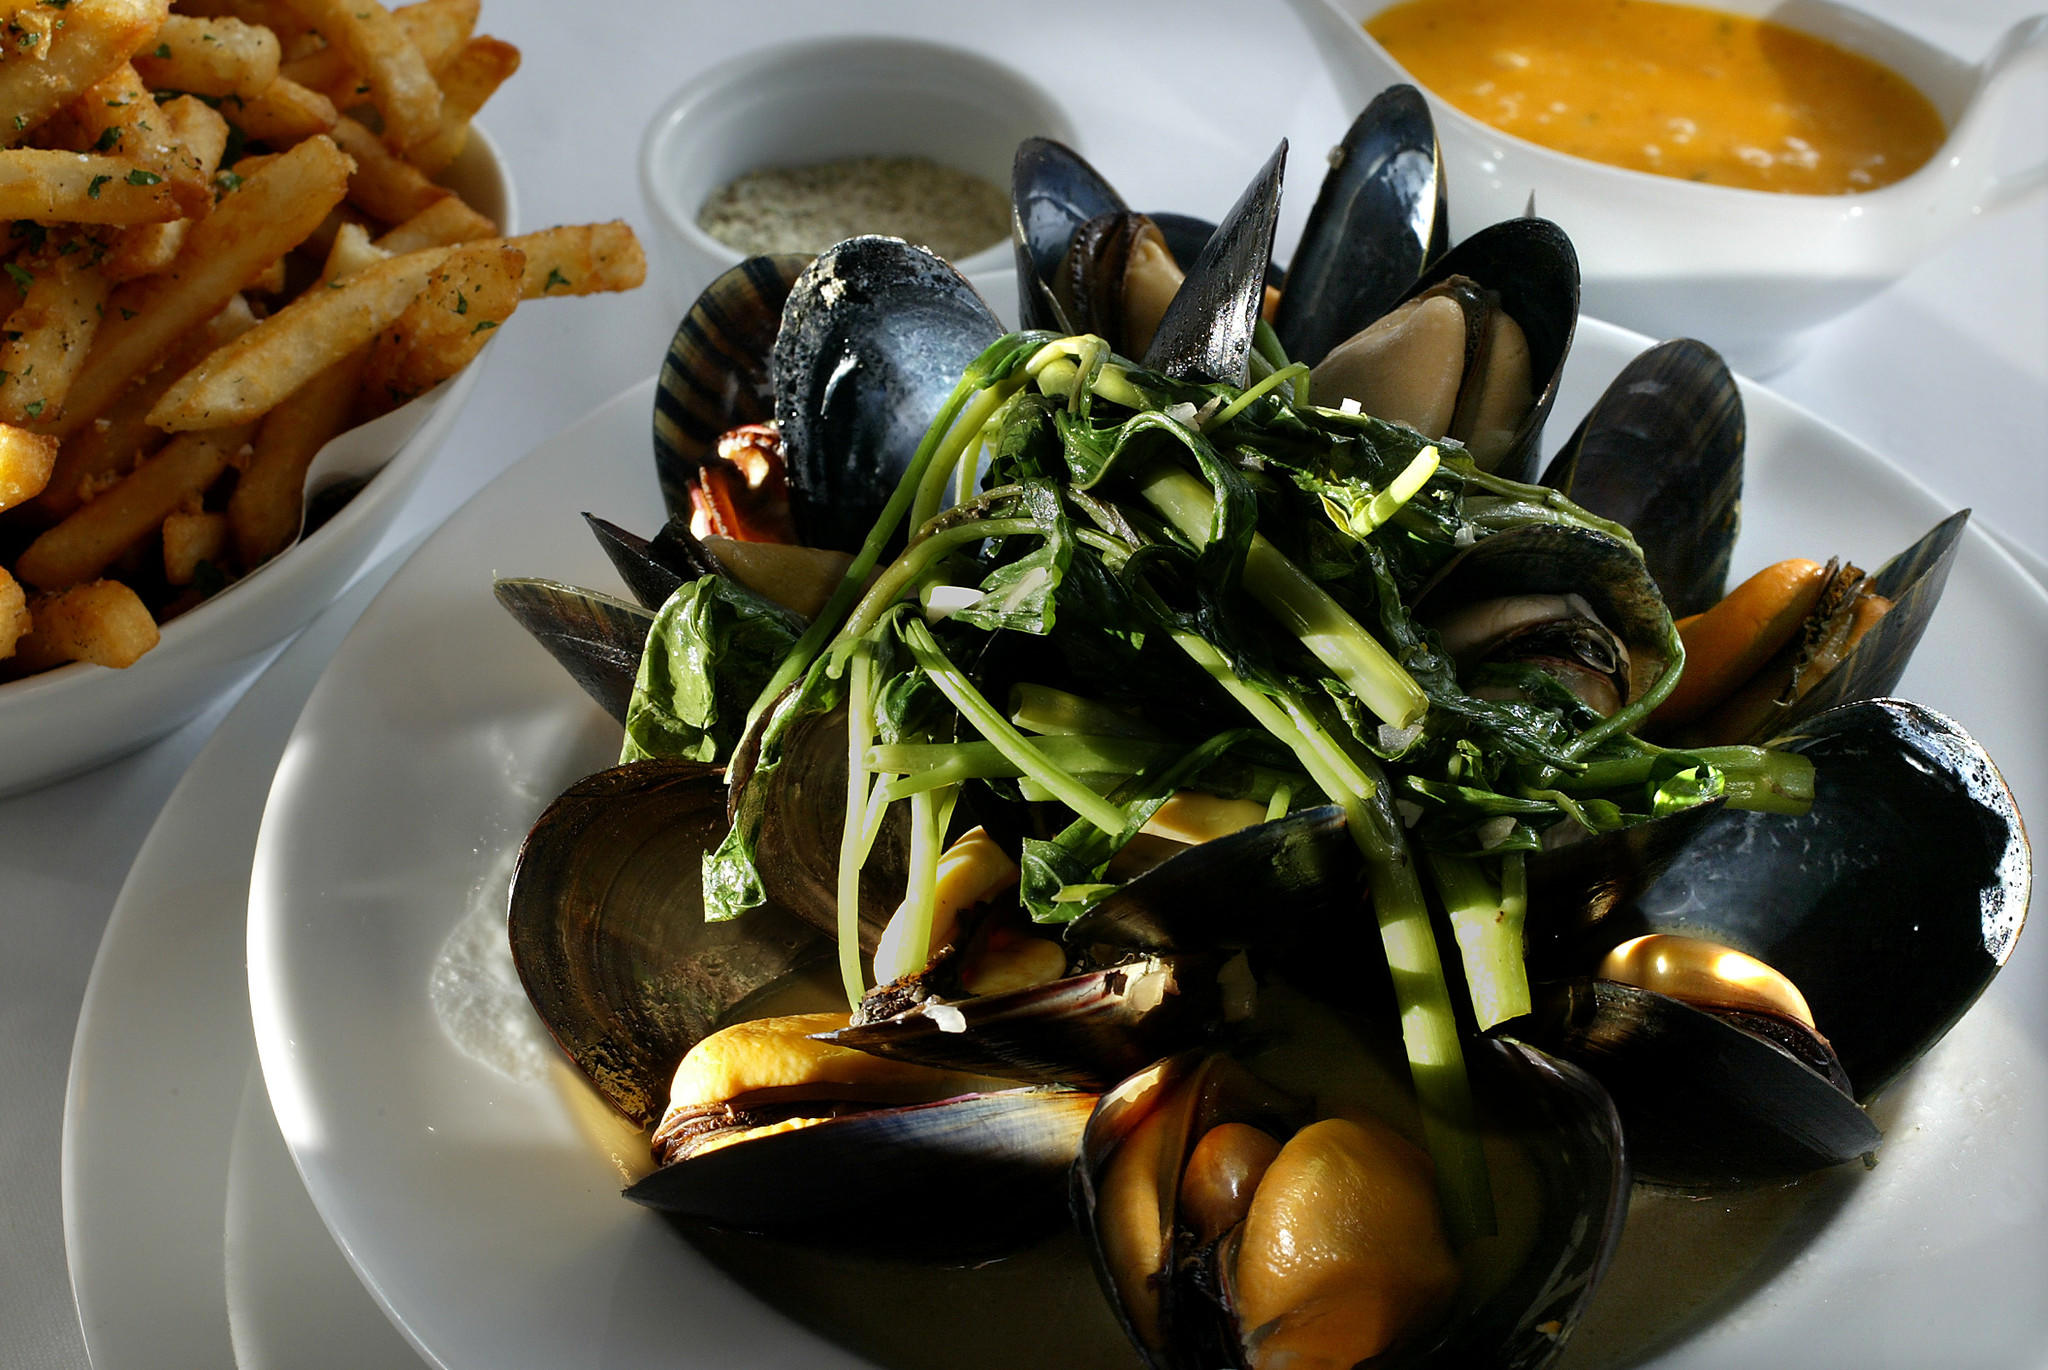 Black mussels with fennel salt